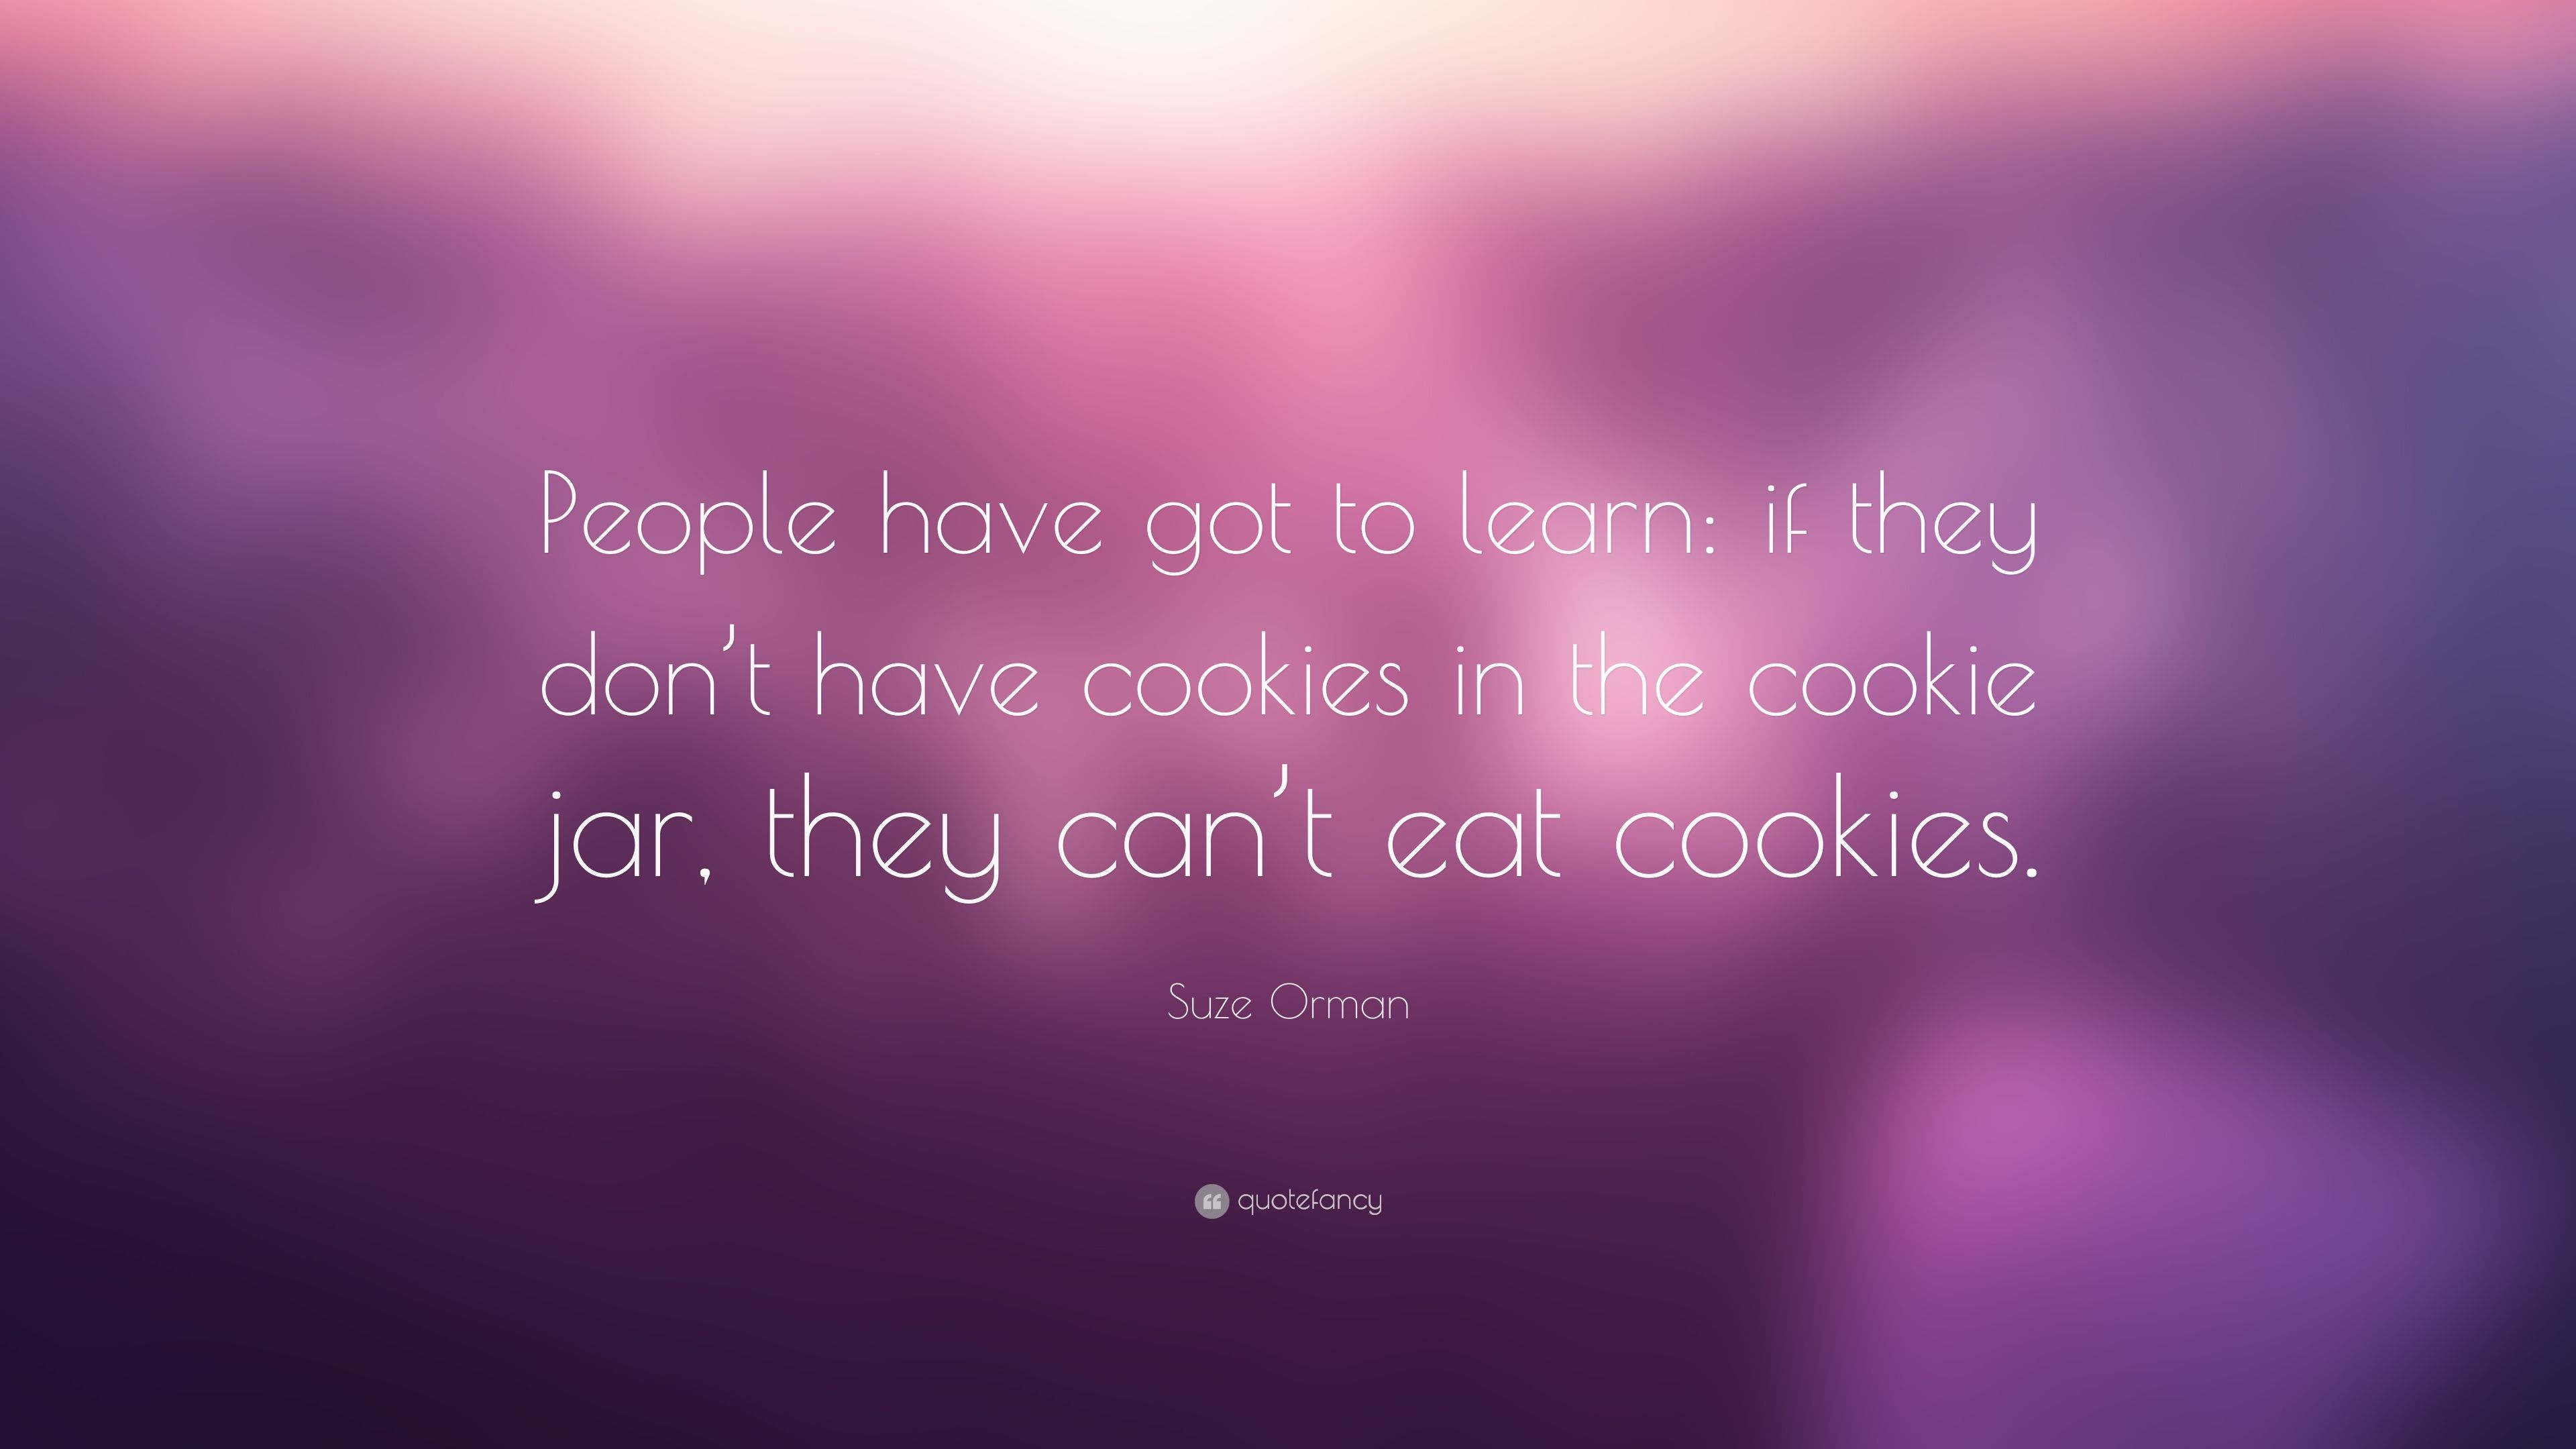 """Suze Orman Quote: """"People have got to learn: if they don't have cookies in  the cookie jar, they can't eat cookies."""" (7 wallpapers) - Quotefancy"""